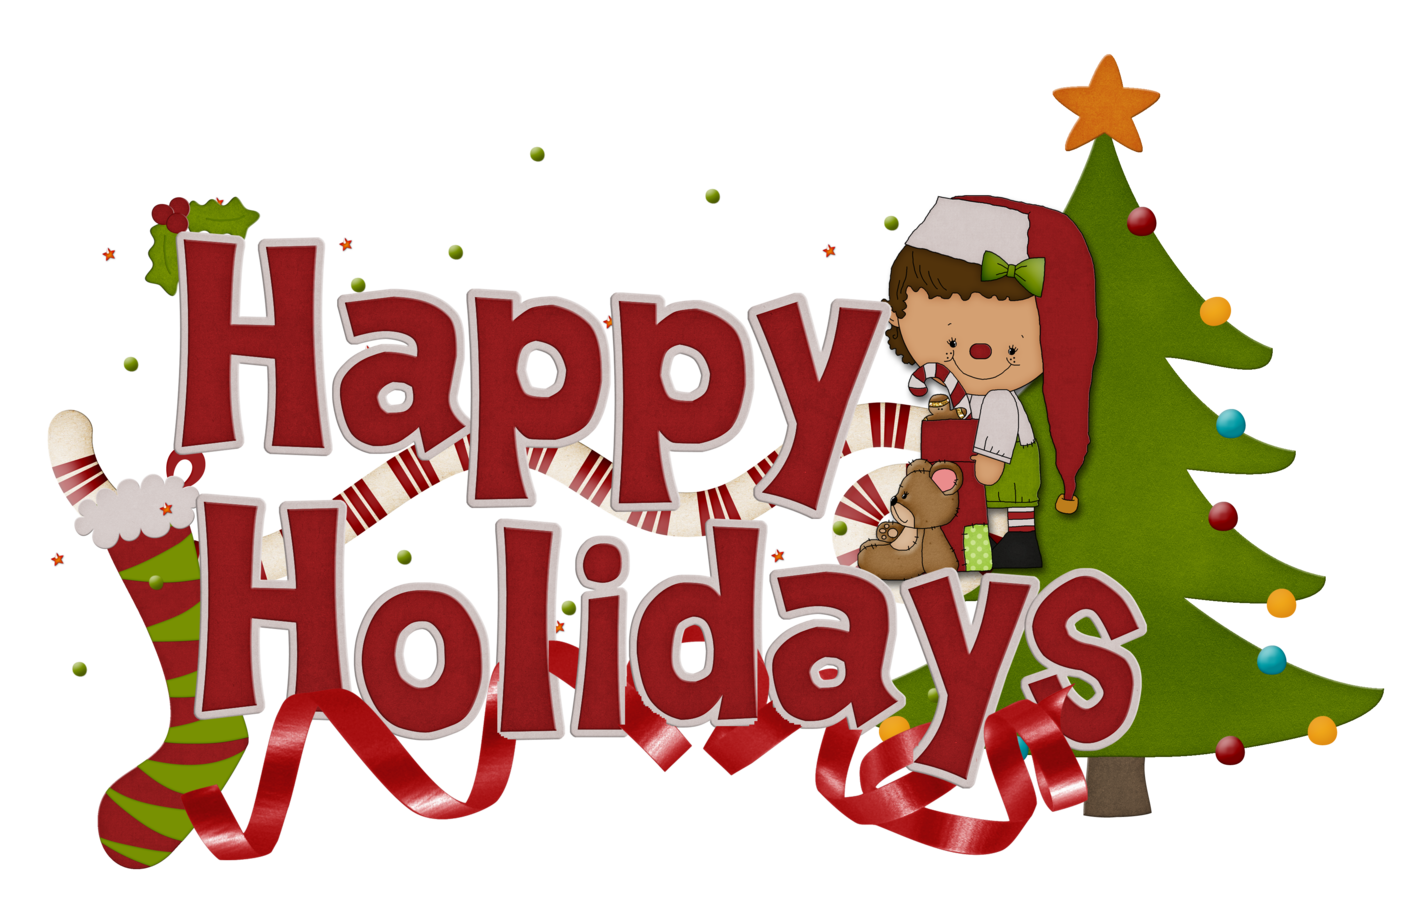 Happy holidays pictures free clipart graphic black and white free happy holidays clip art | Our Sneak Elf Friend and a Friday ... graphic black and white